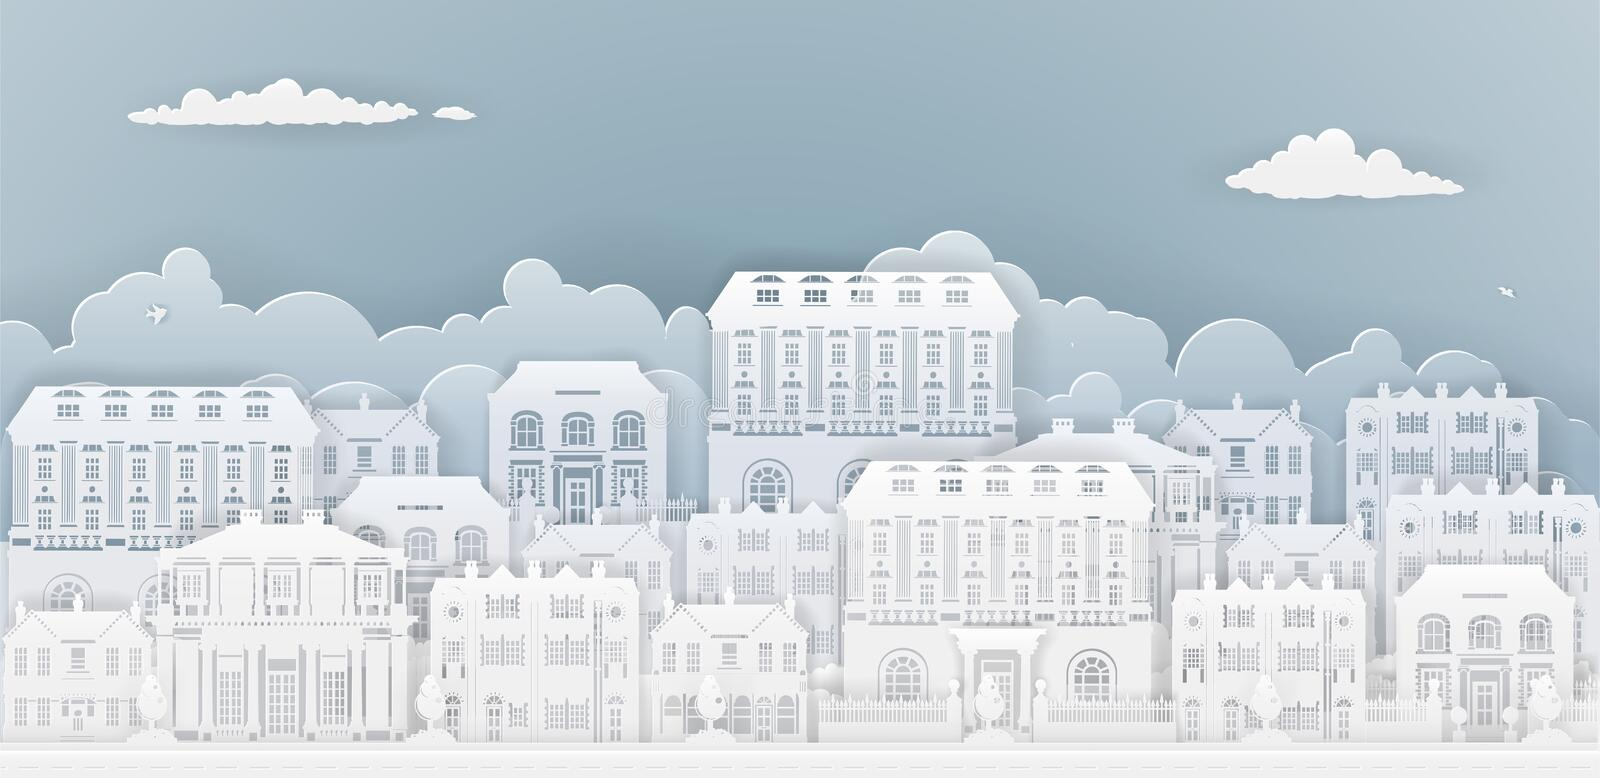 Paper Houses Row. Row of houses and buildings in silhouette in old Georgian or Victorian styles on a smart or posh street royalty free illustration